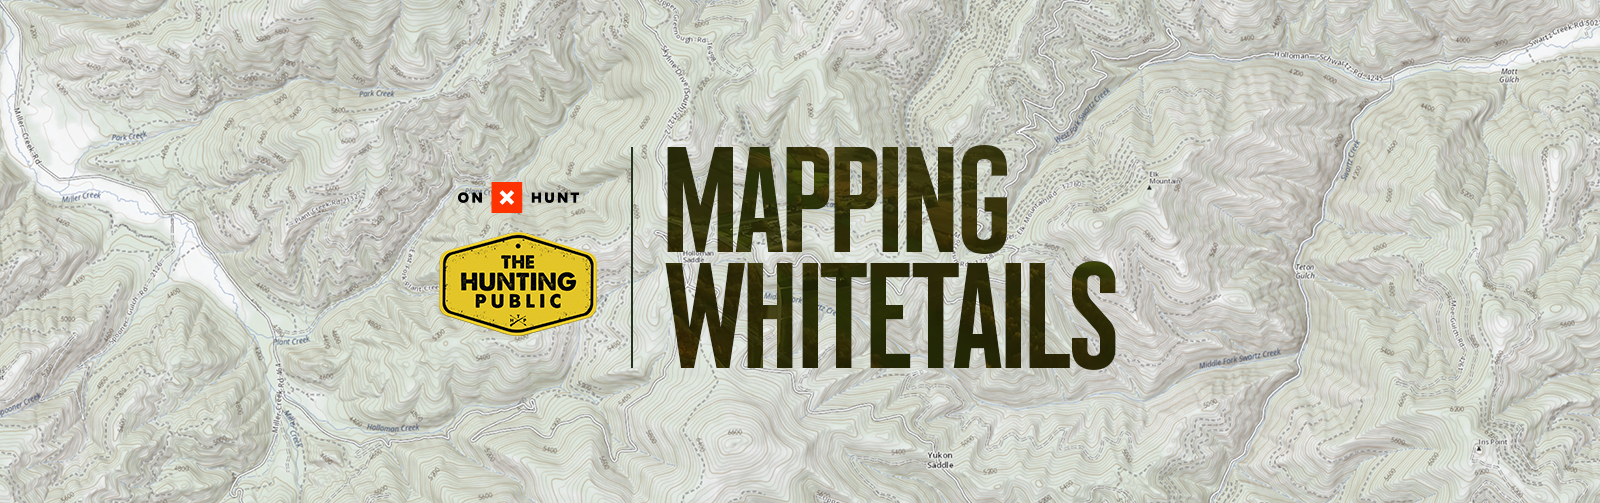 Mapping Whitetails with The Hunting Public: Episode 1 | onX